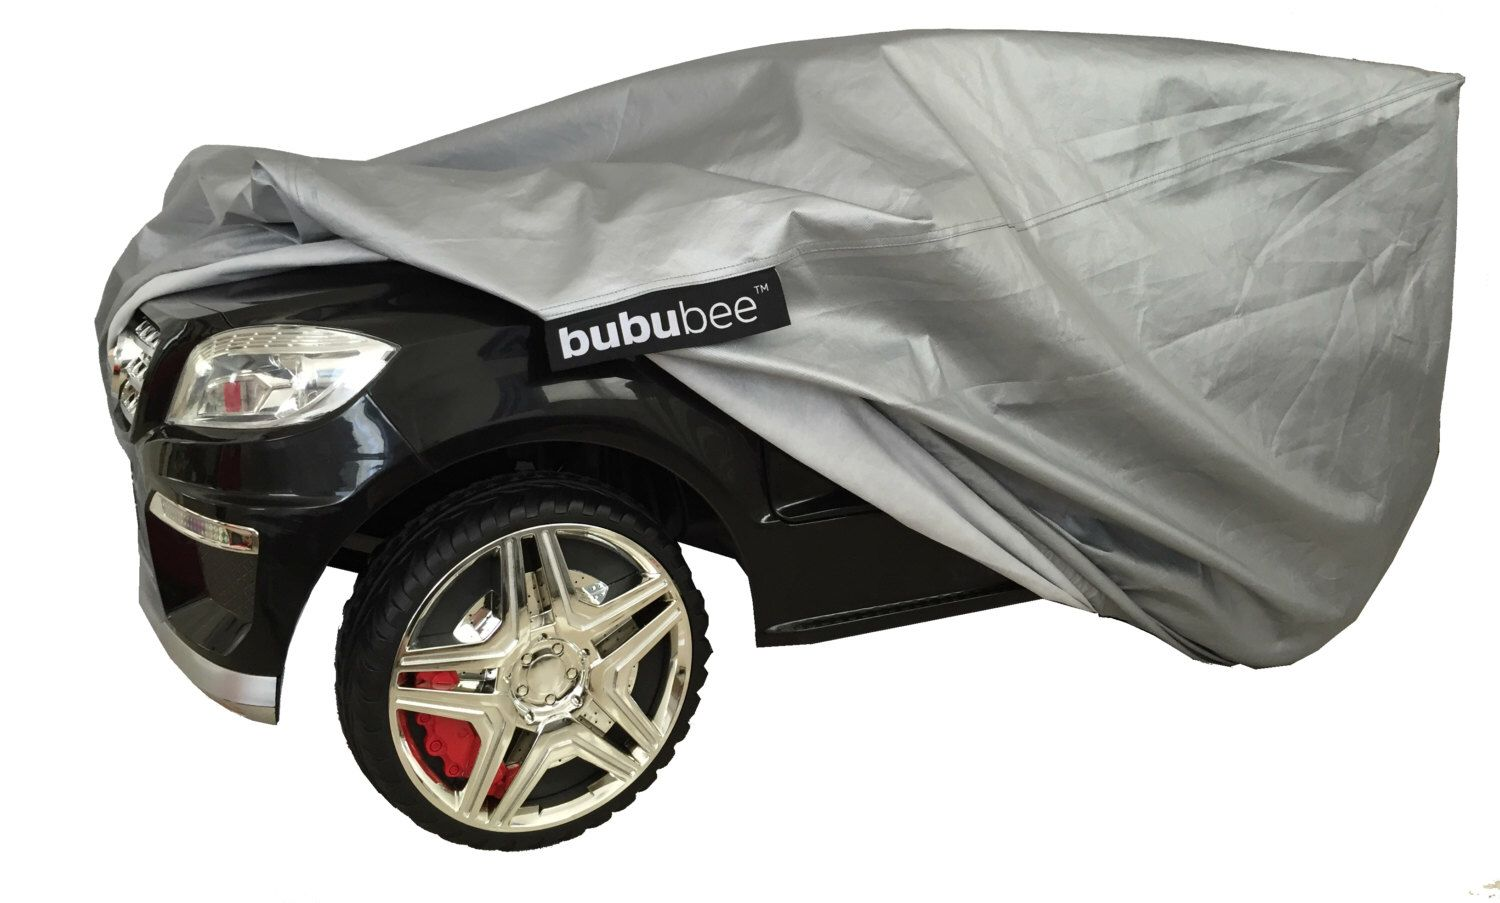 Large Children S Ride On Toy Car Cover Uv Rain Snow Waterproof Protection For Electric Wheels